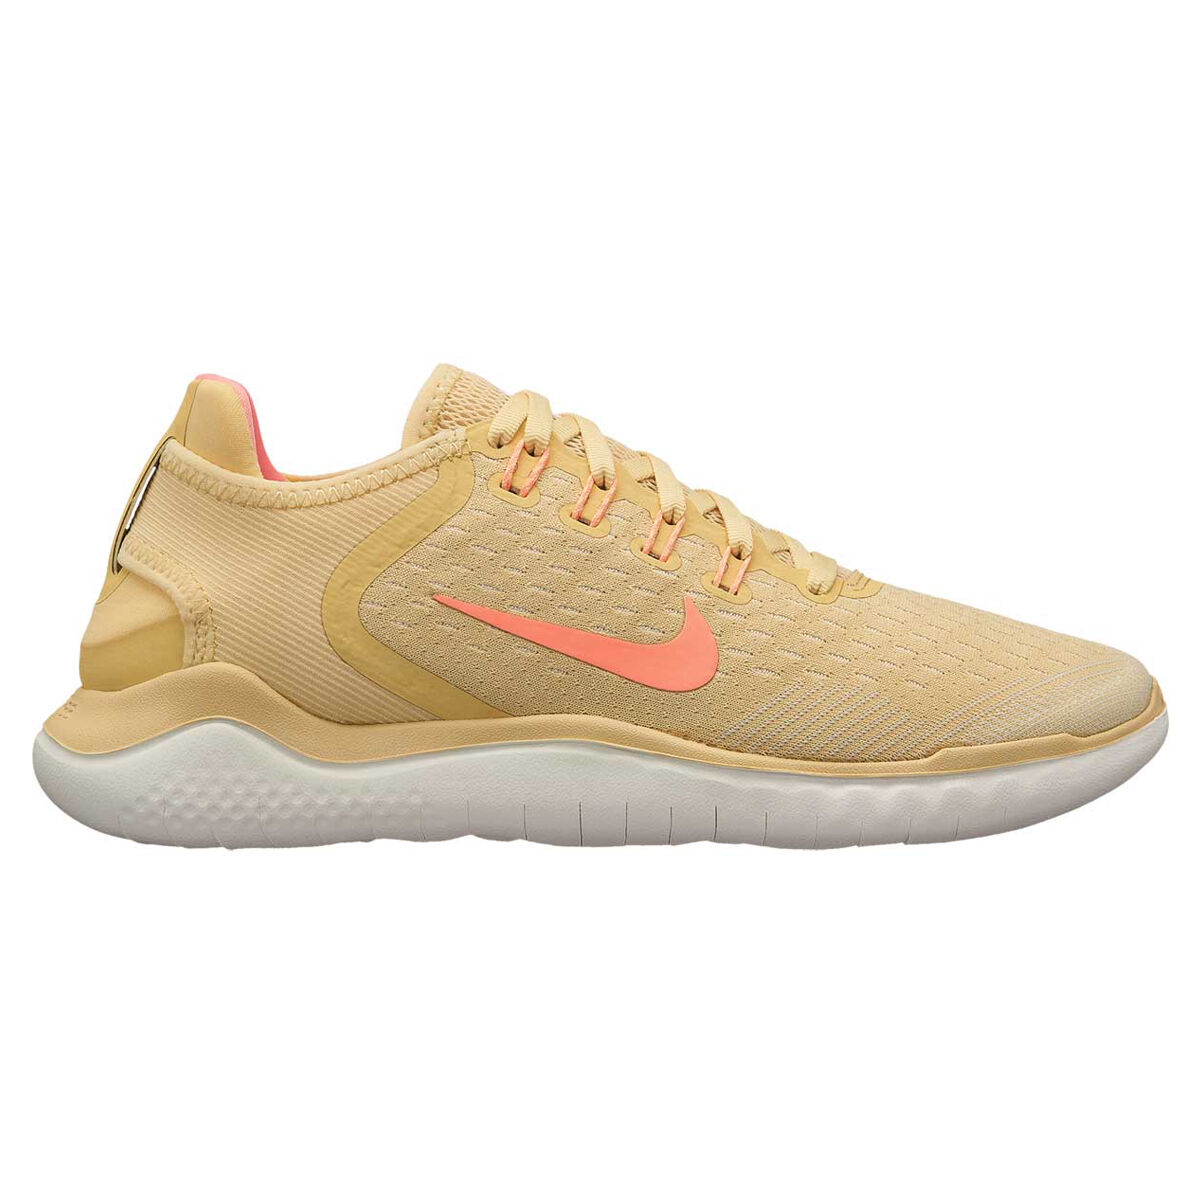 promo code 45c08 a973d shopping nike free rn 2018 womens running shoes yellow pink us 6 yellow  pink d556c 375c2